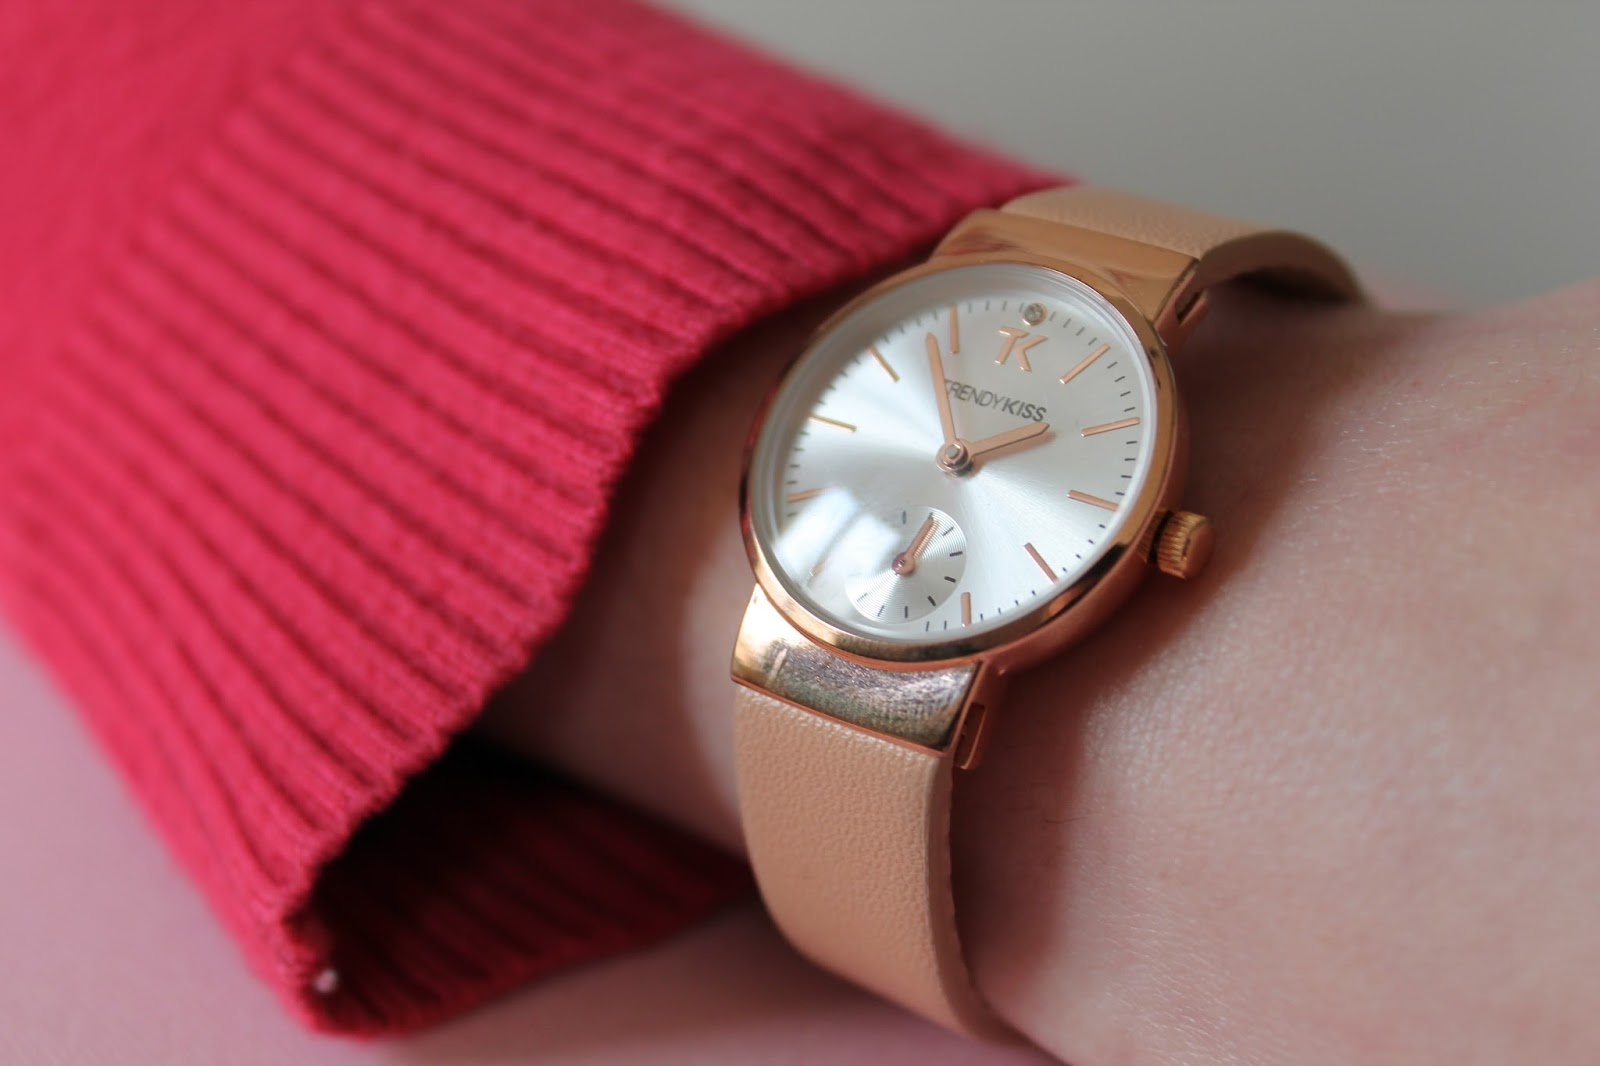 concours giveaway contest montre watch trendy elements kiss classic mode ootd shopping passion kirsten elise a gagner